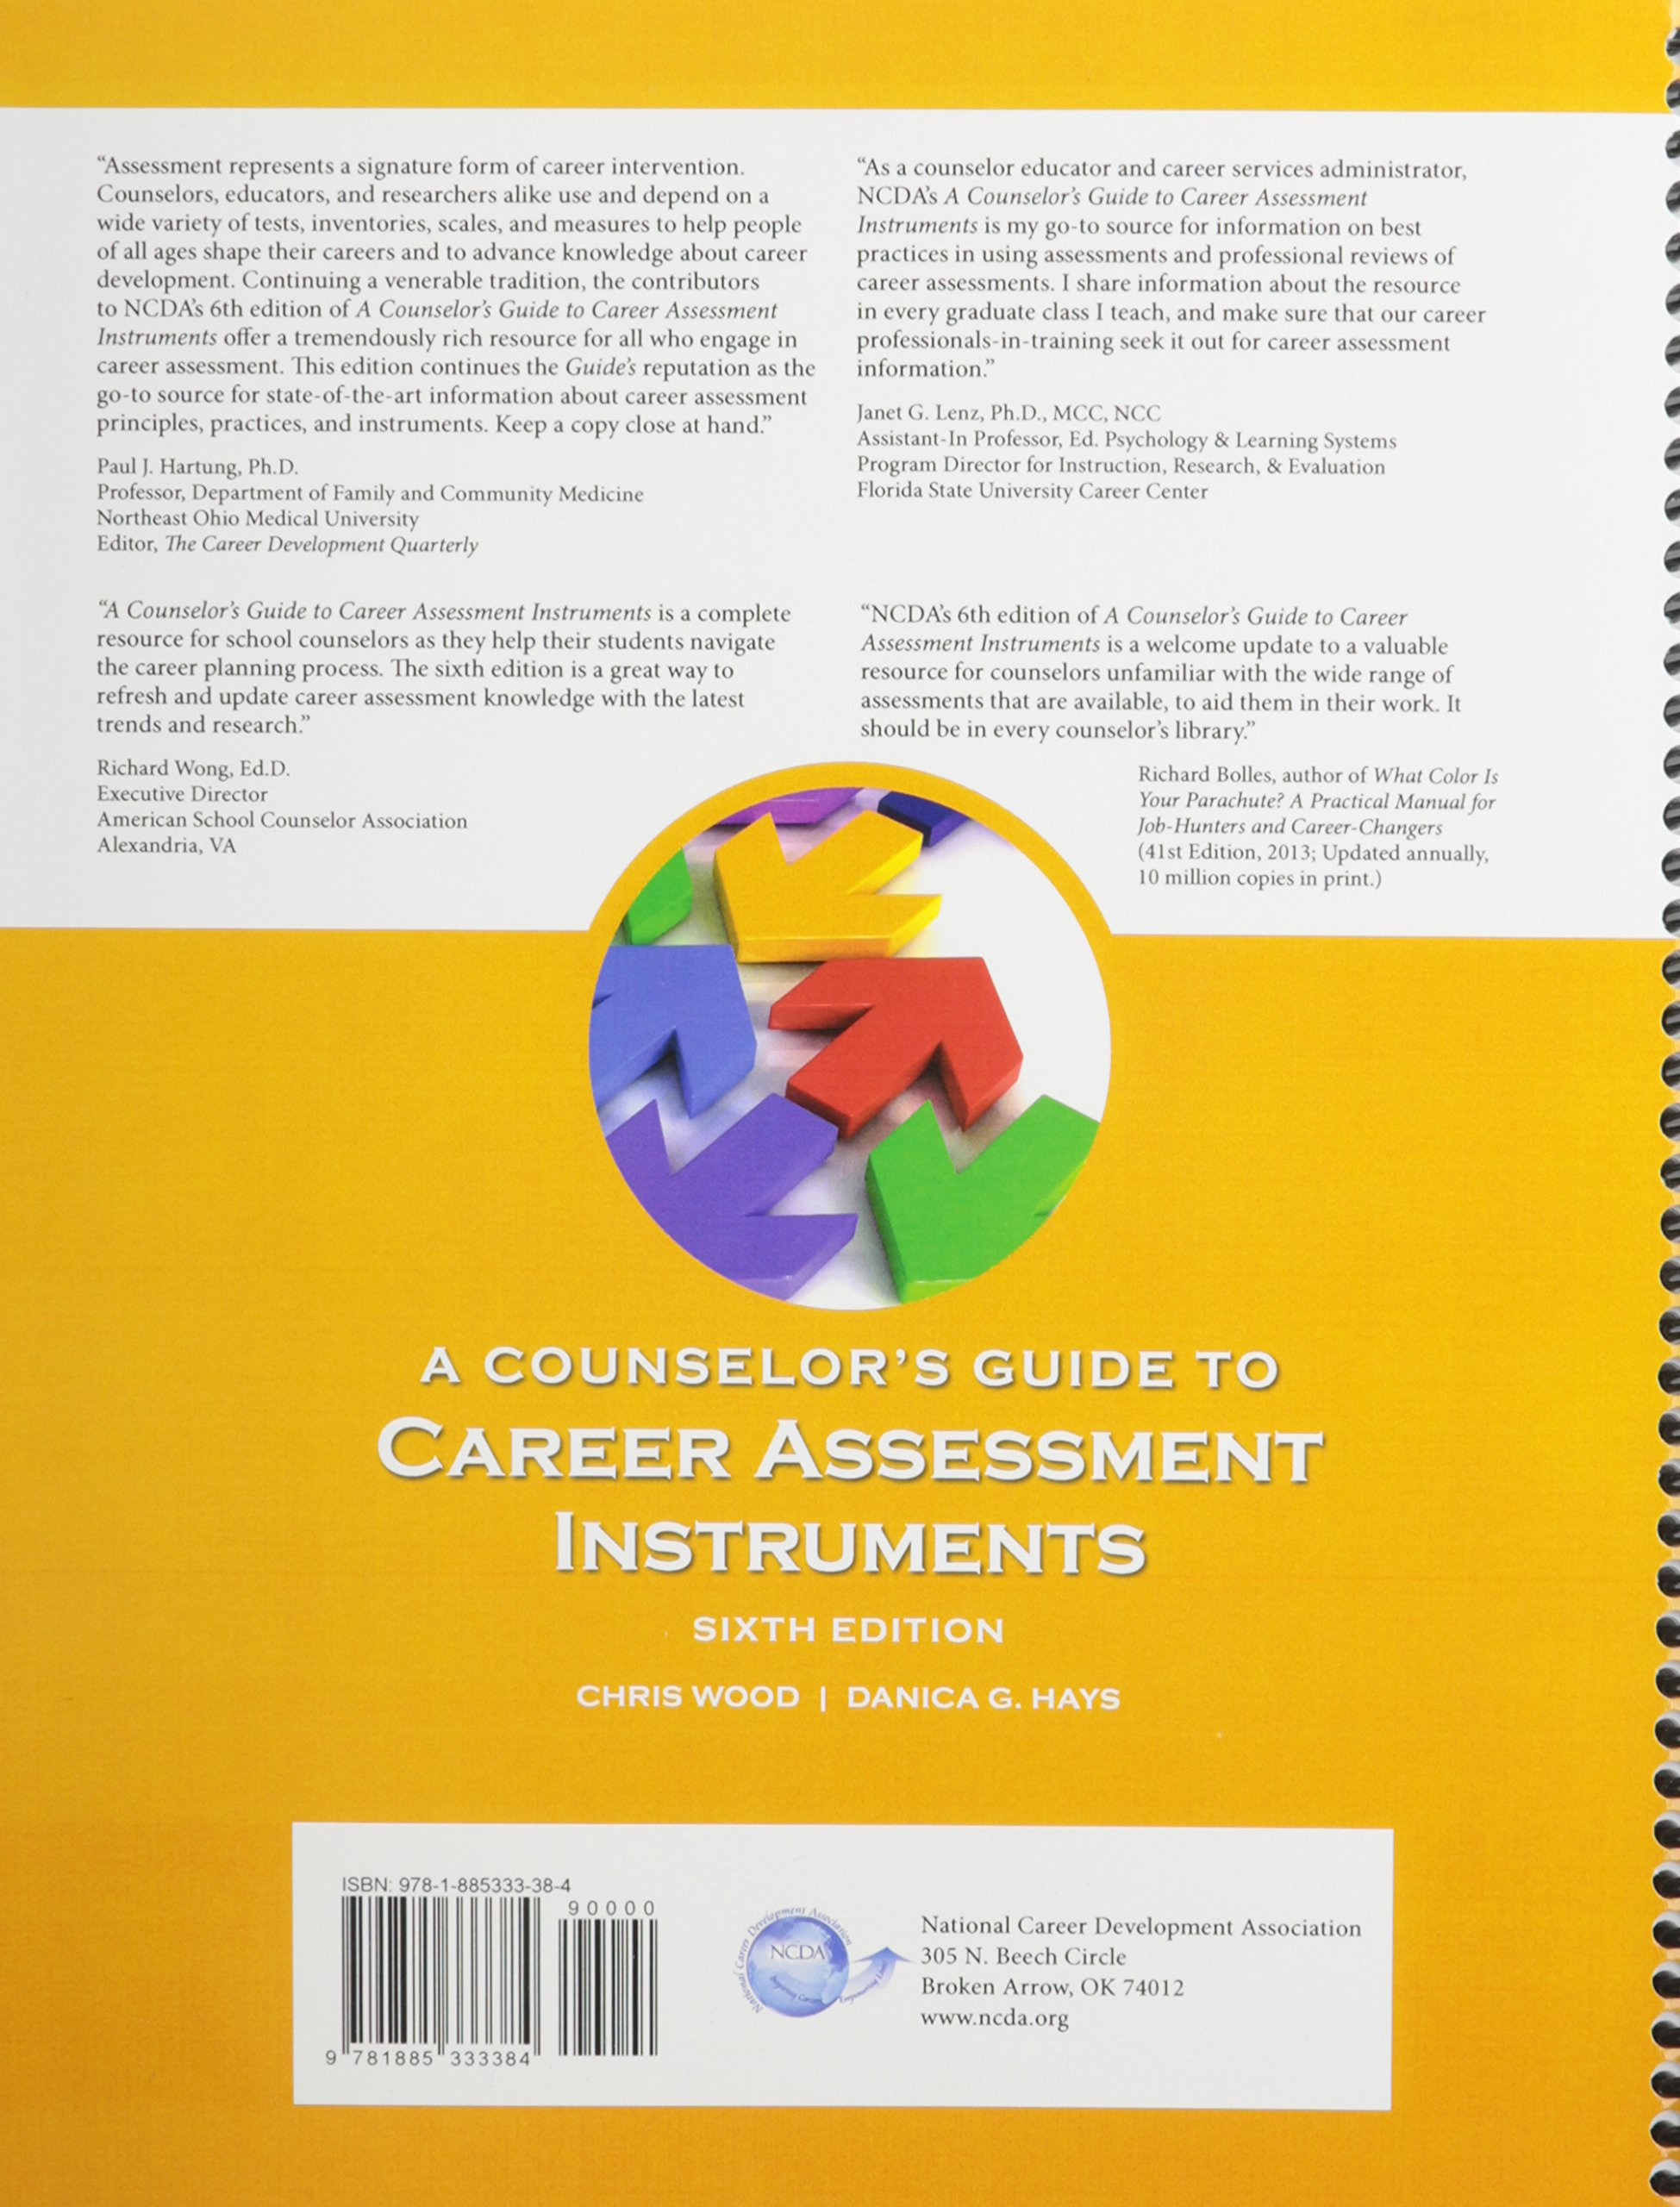 a counselor s guide to career assessment instruments chris wood a counselor s guide to career assessment instruments chris wood 9781885333384 amazon com books